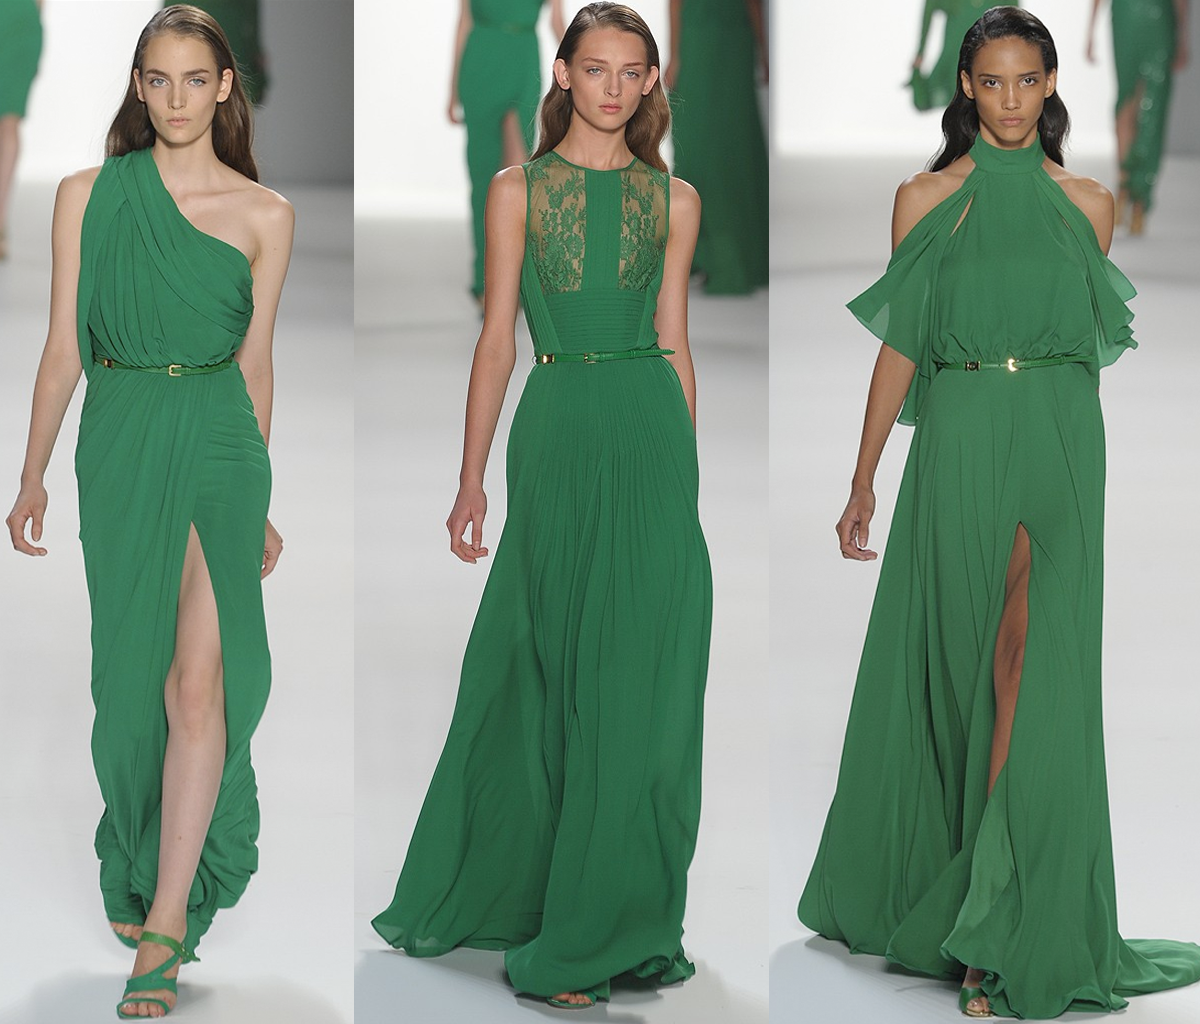 elie-saab-green-bridesmaids-dresses-emerald-wedding-colors